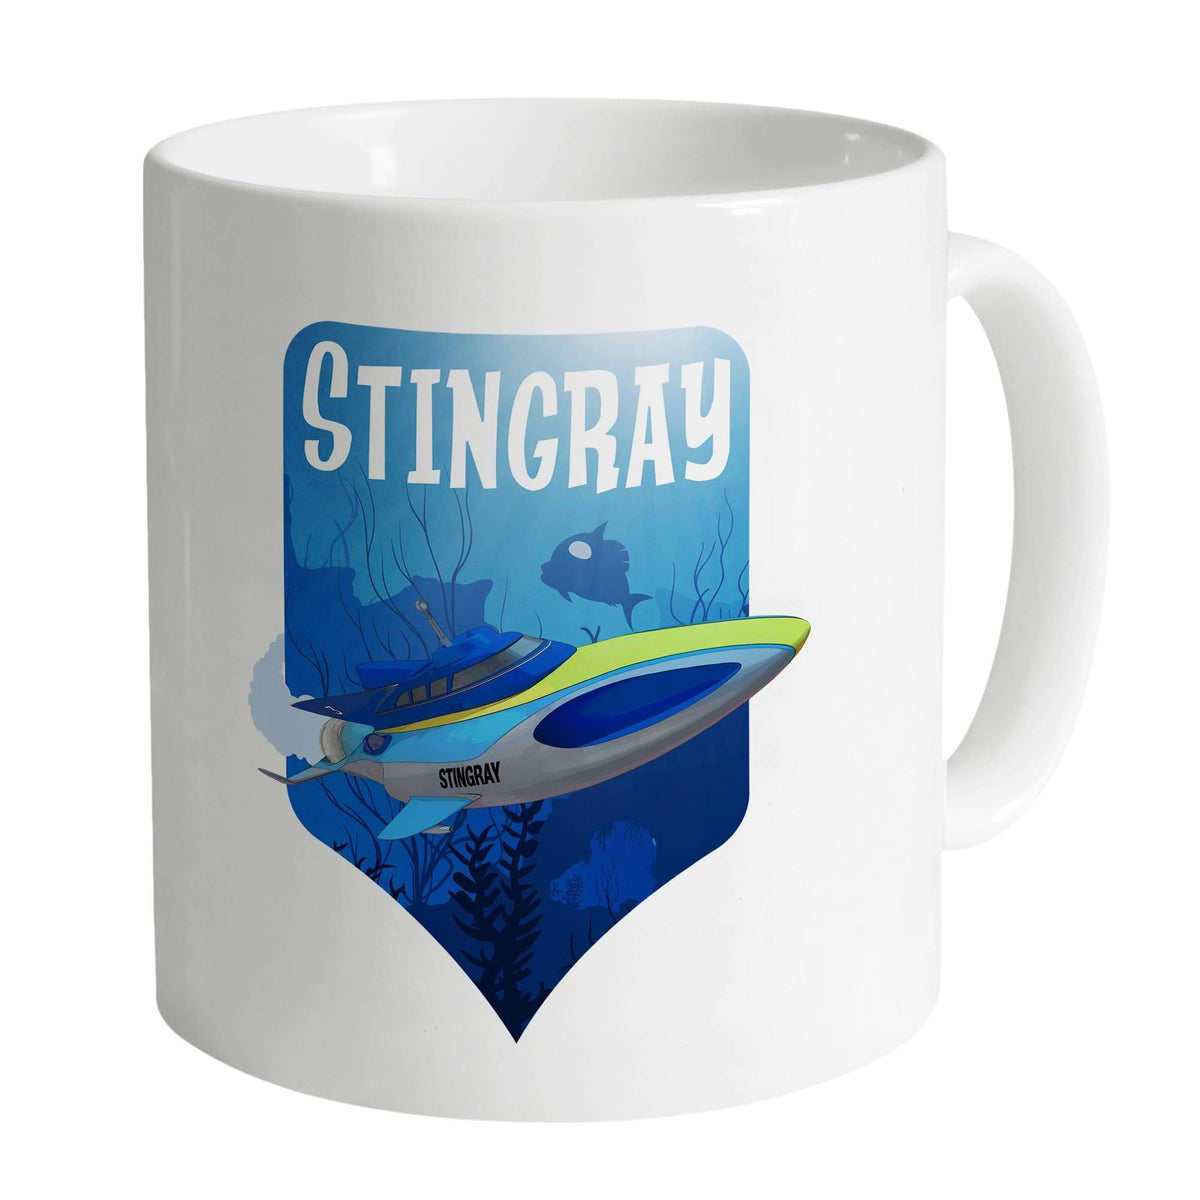 Stingray Dives Under The Sea White Mug [Official & Exclusive] - The Gerry Anderson Store